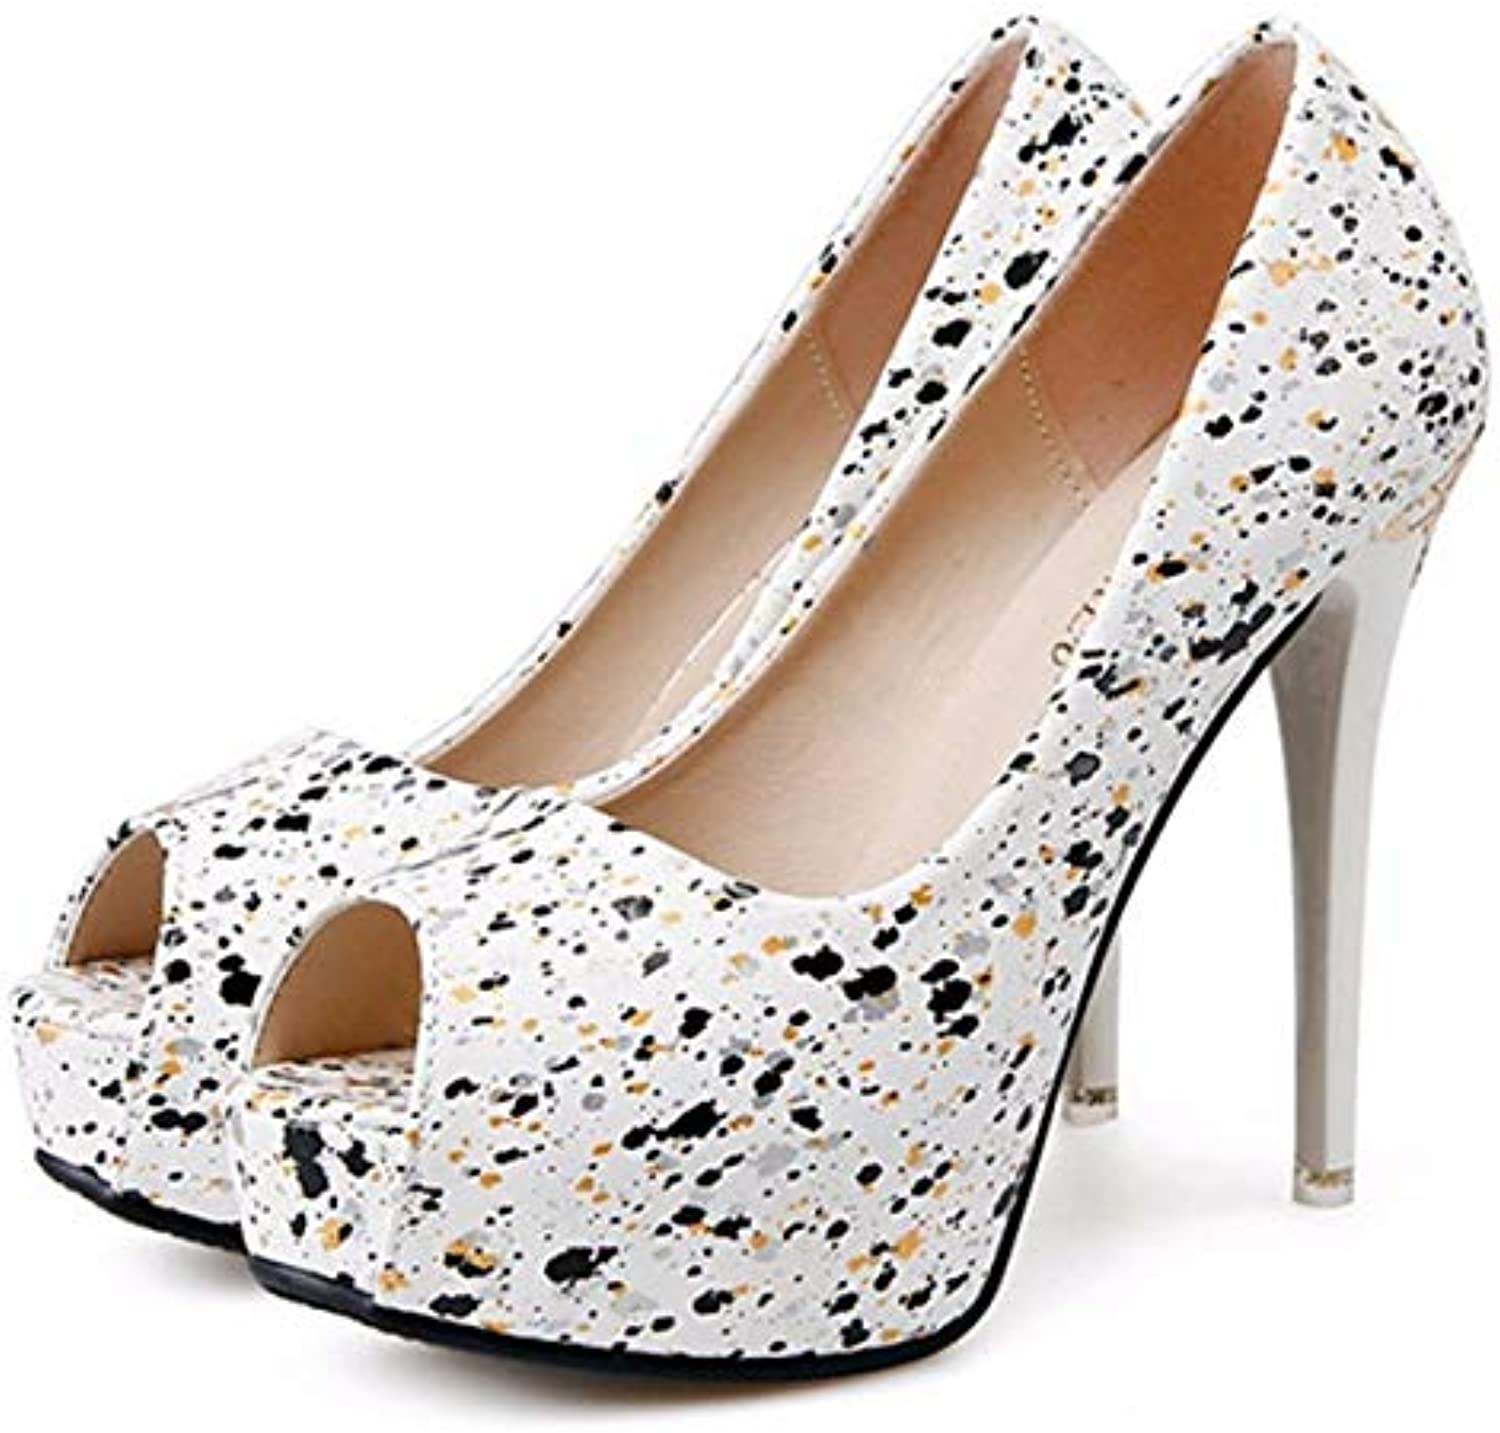 ddf85fb2b9d GTVERNH GTVERNH GTVERNH Women s shoes fashion Spring And Summer Super High  Heel 12Cm Fine With Fish Mouth Single Shoe Shallow... B07G666GRJ Parent  4b1ea0